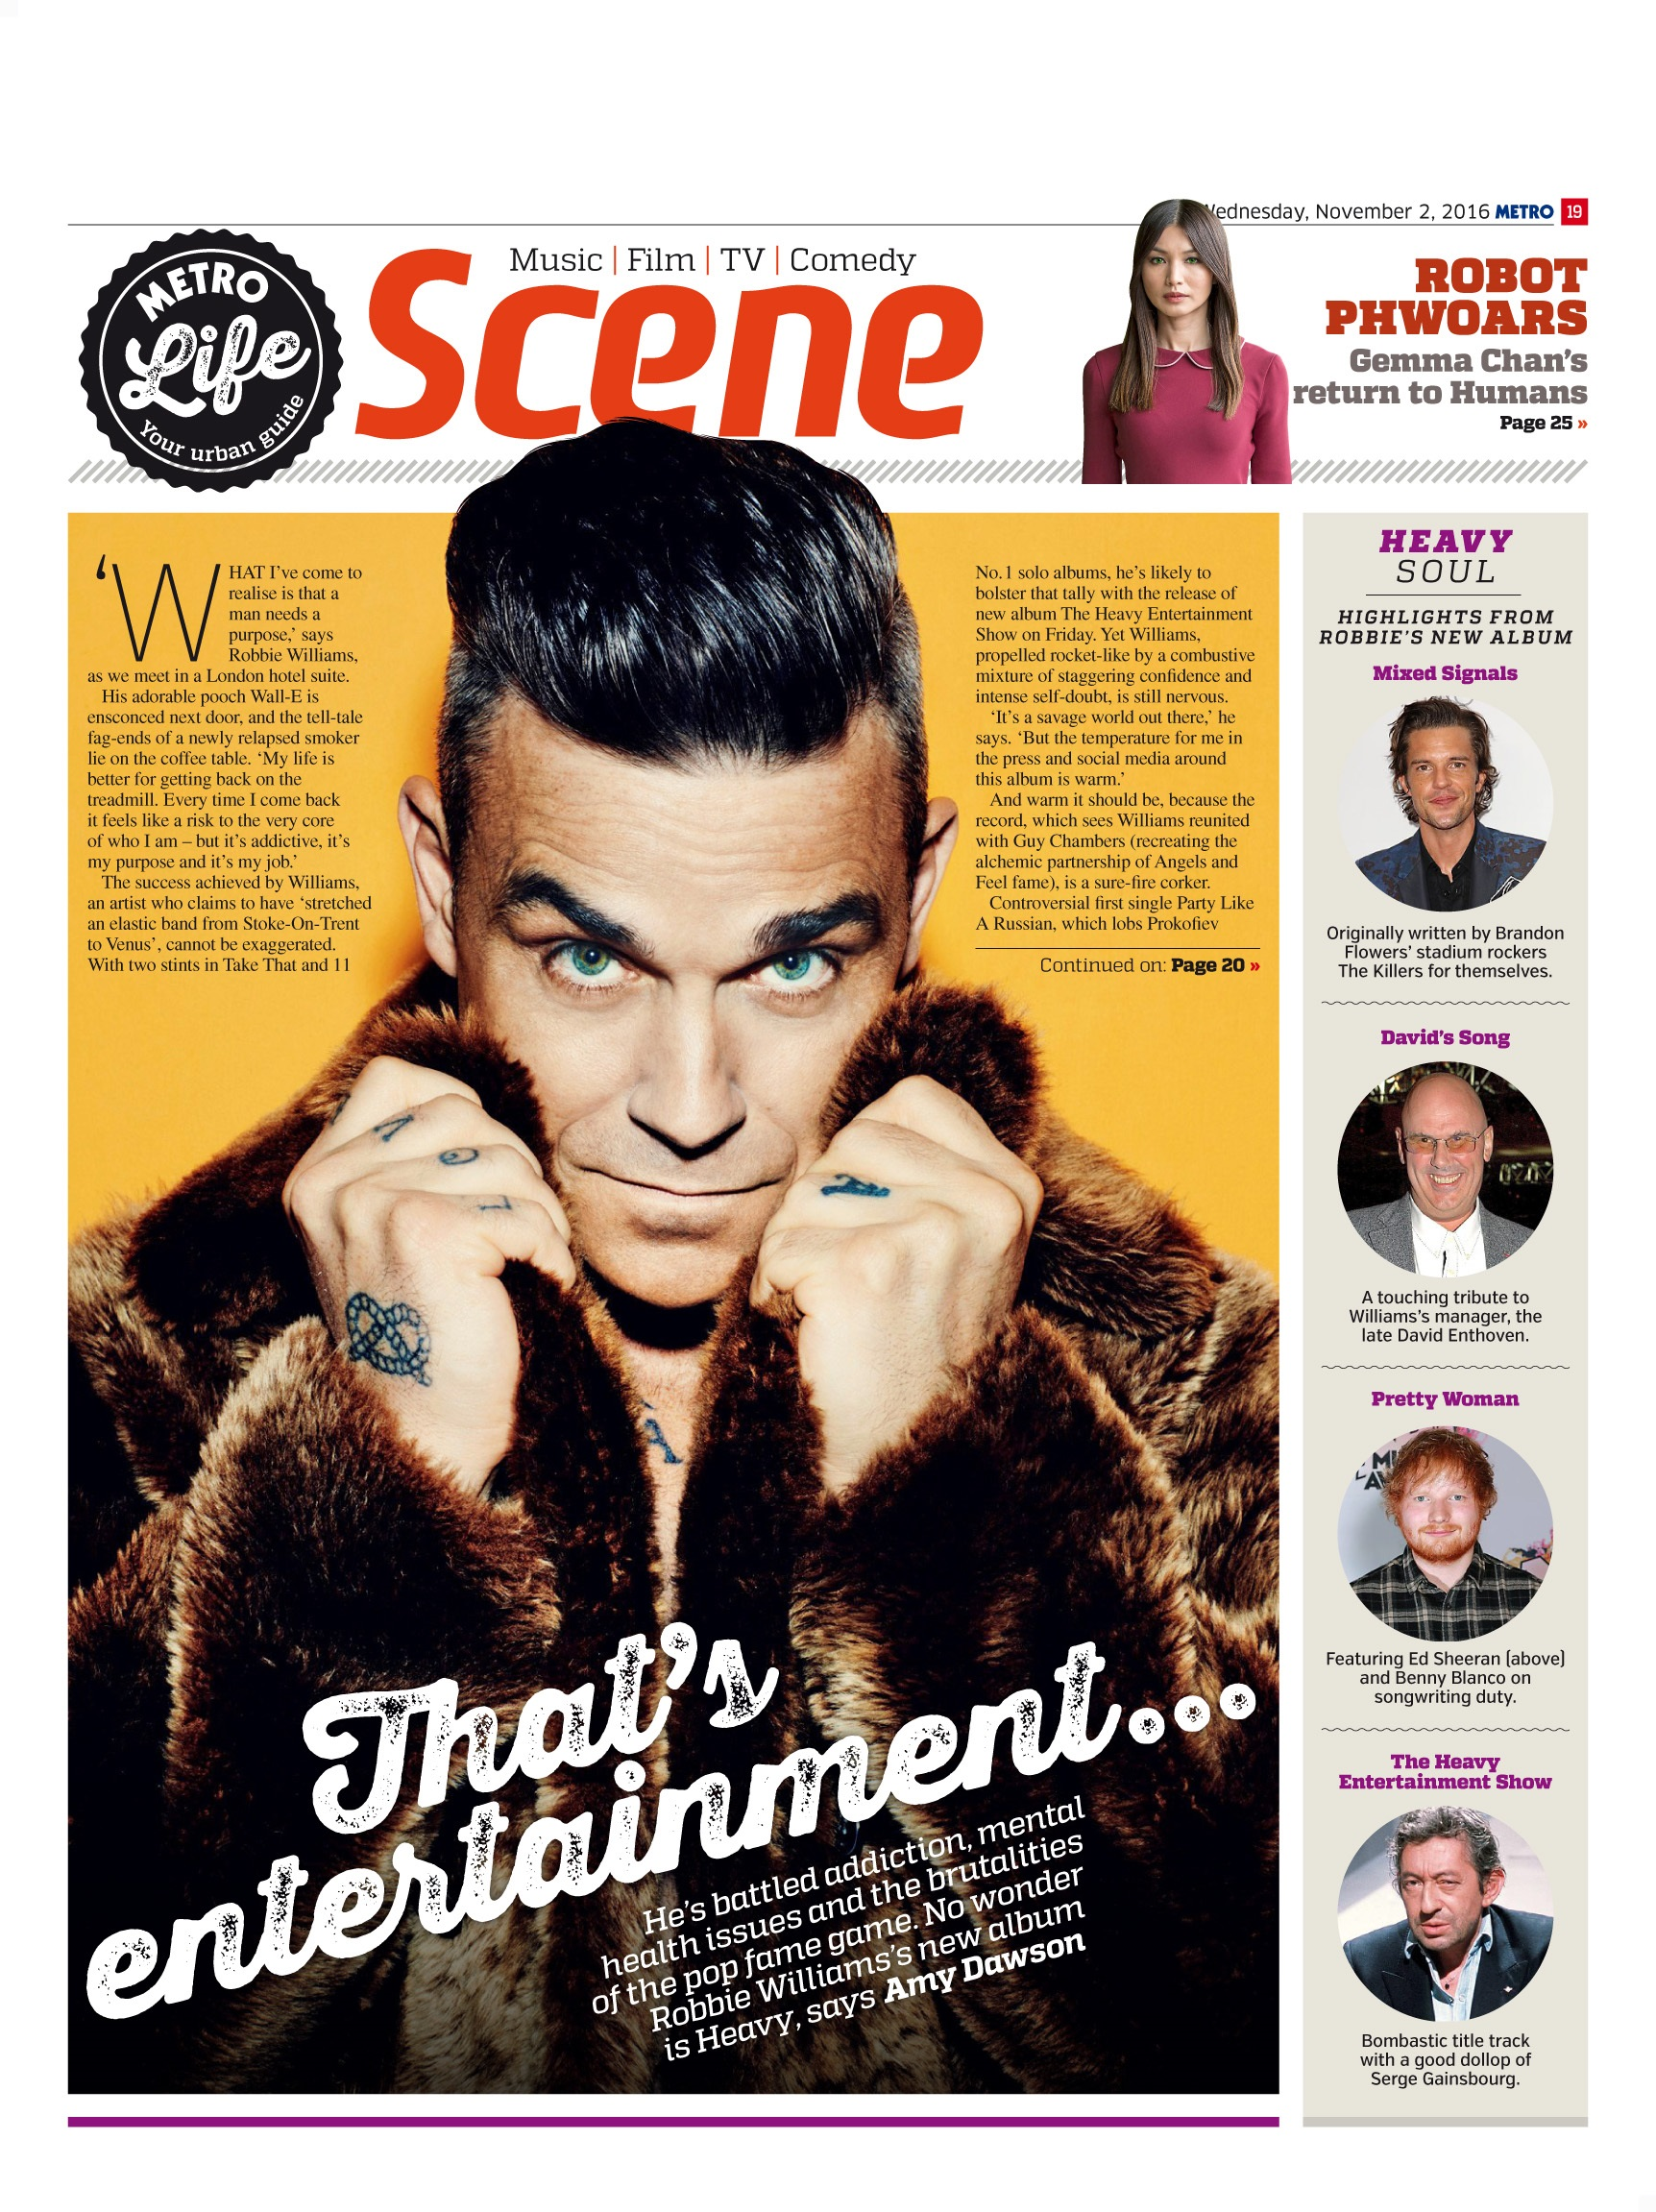 That's Entertainment: An Interview with Robbie Williams (Metro, 2nd Nov 2016)